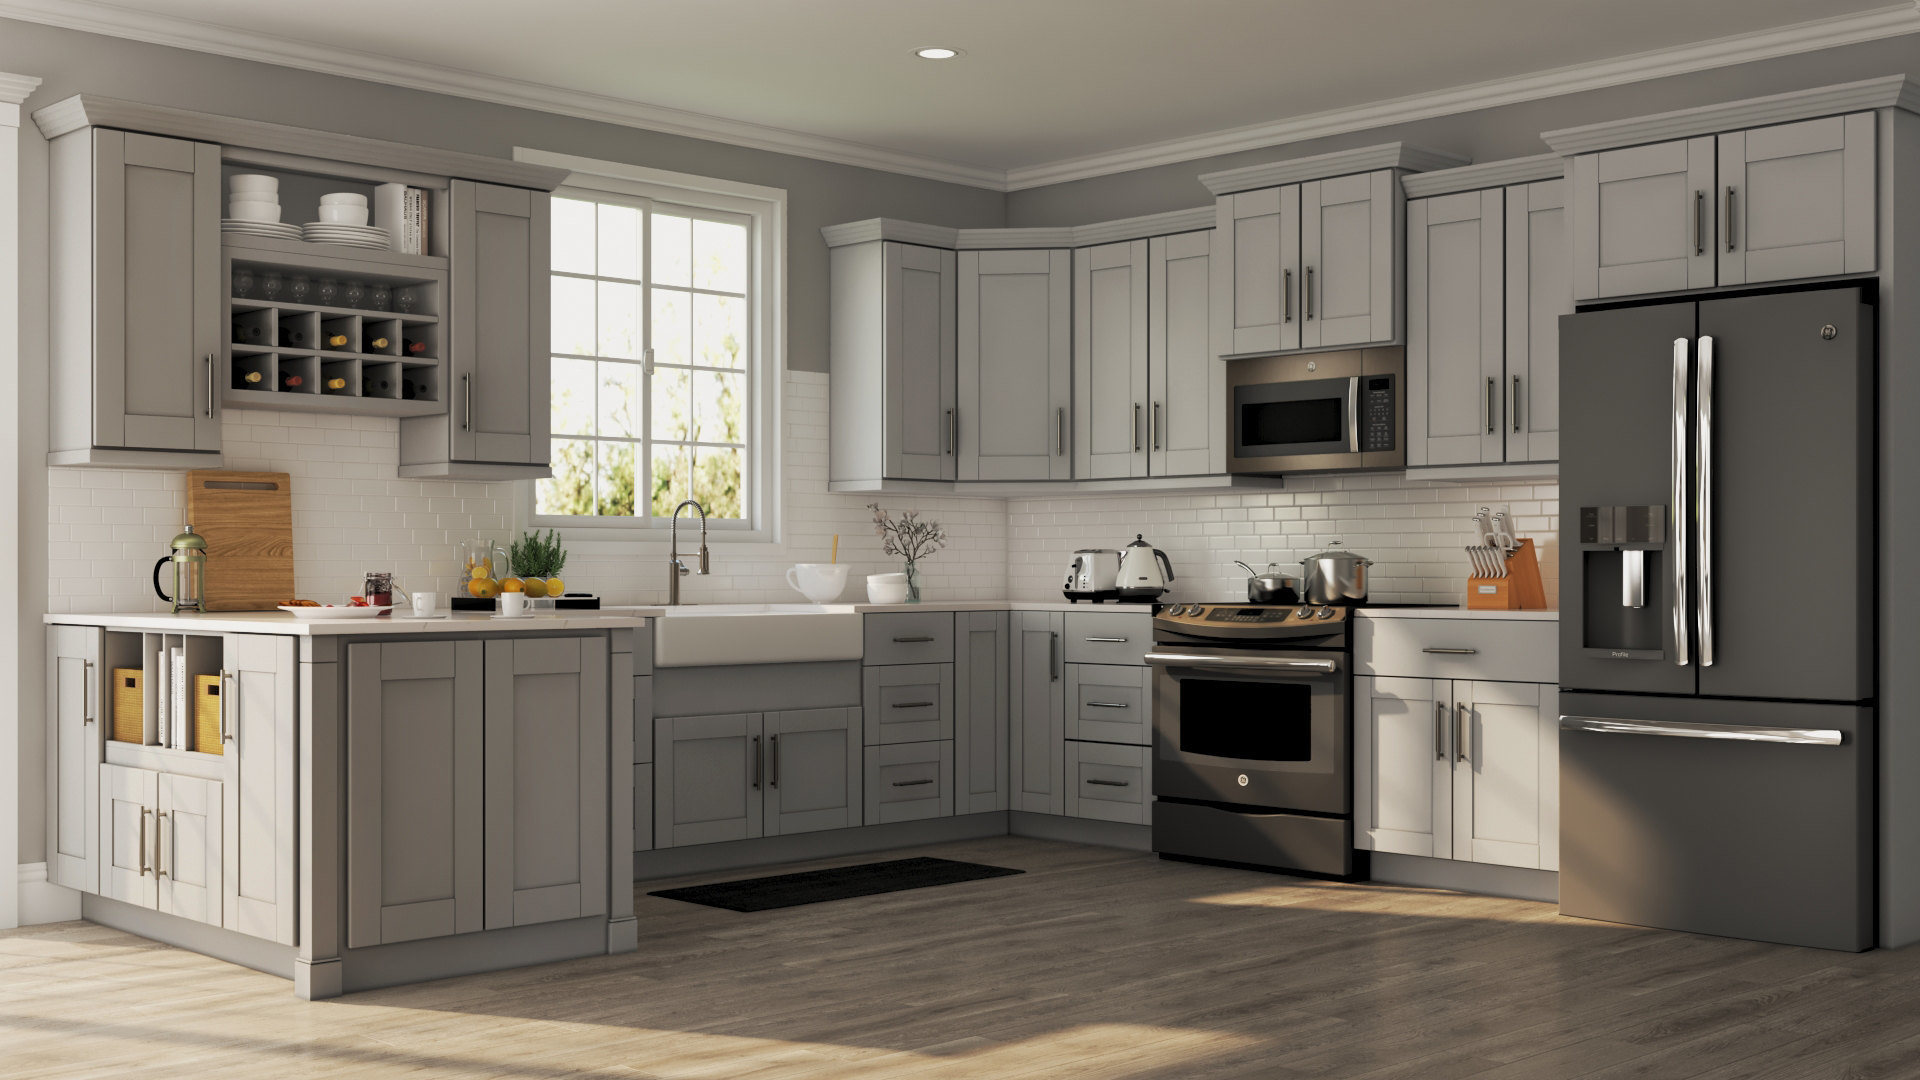 Online Kitchen Cabinet Design Tool